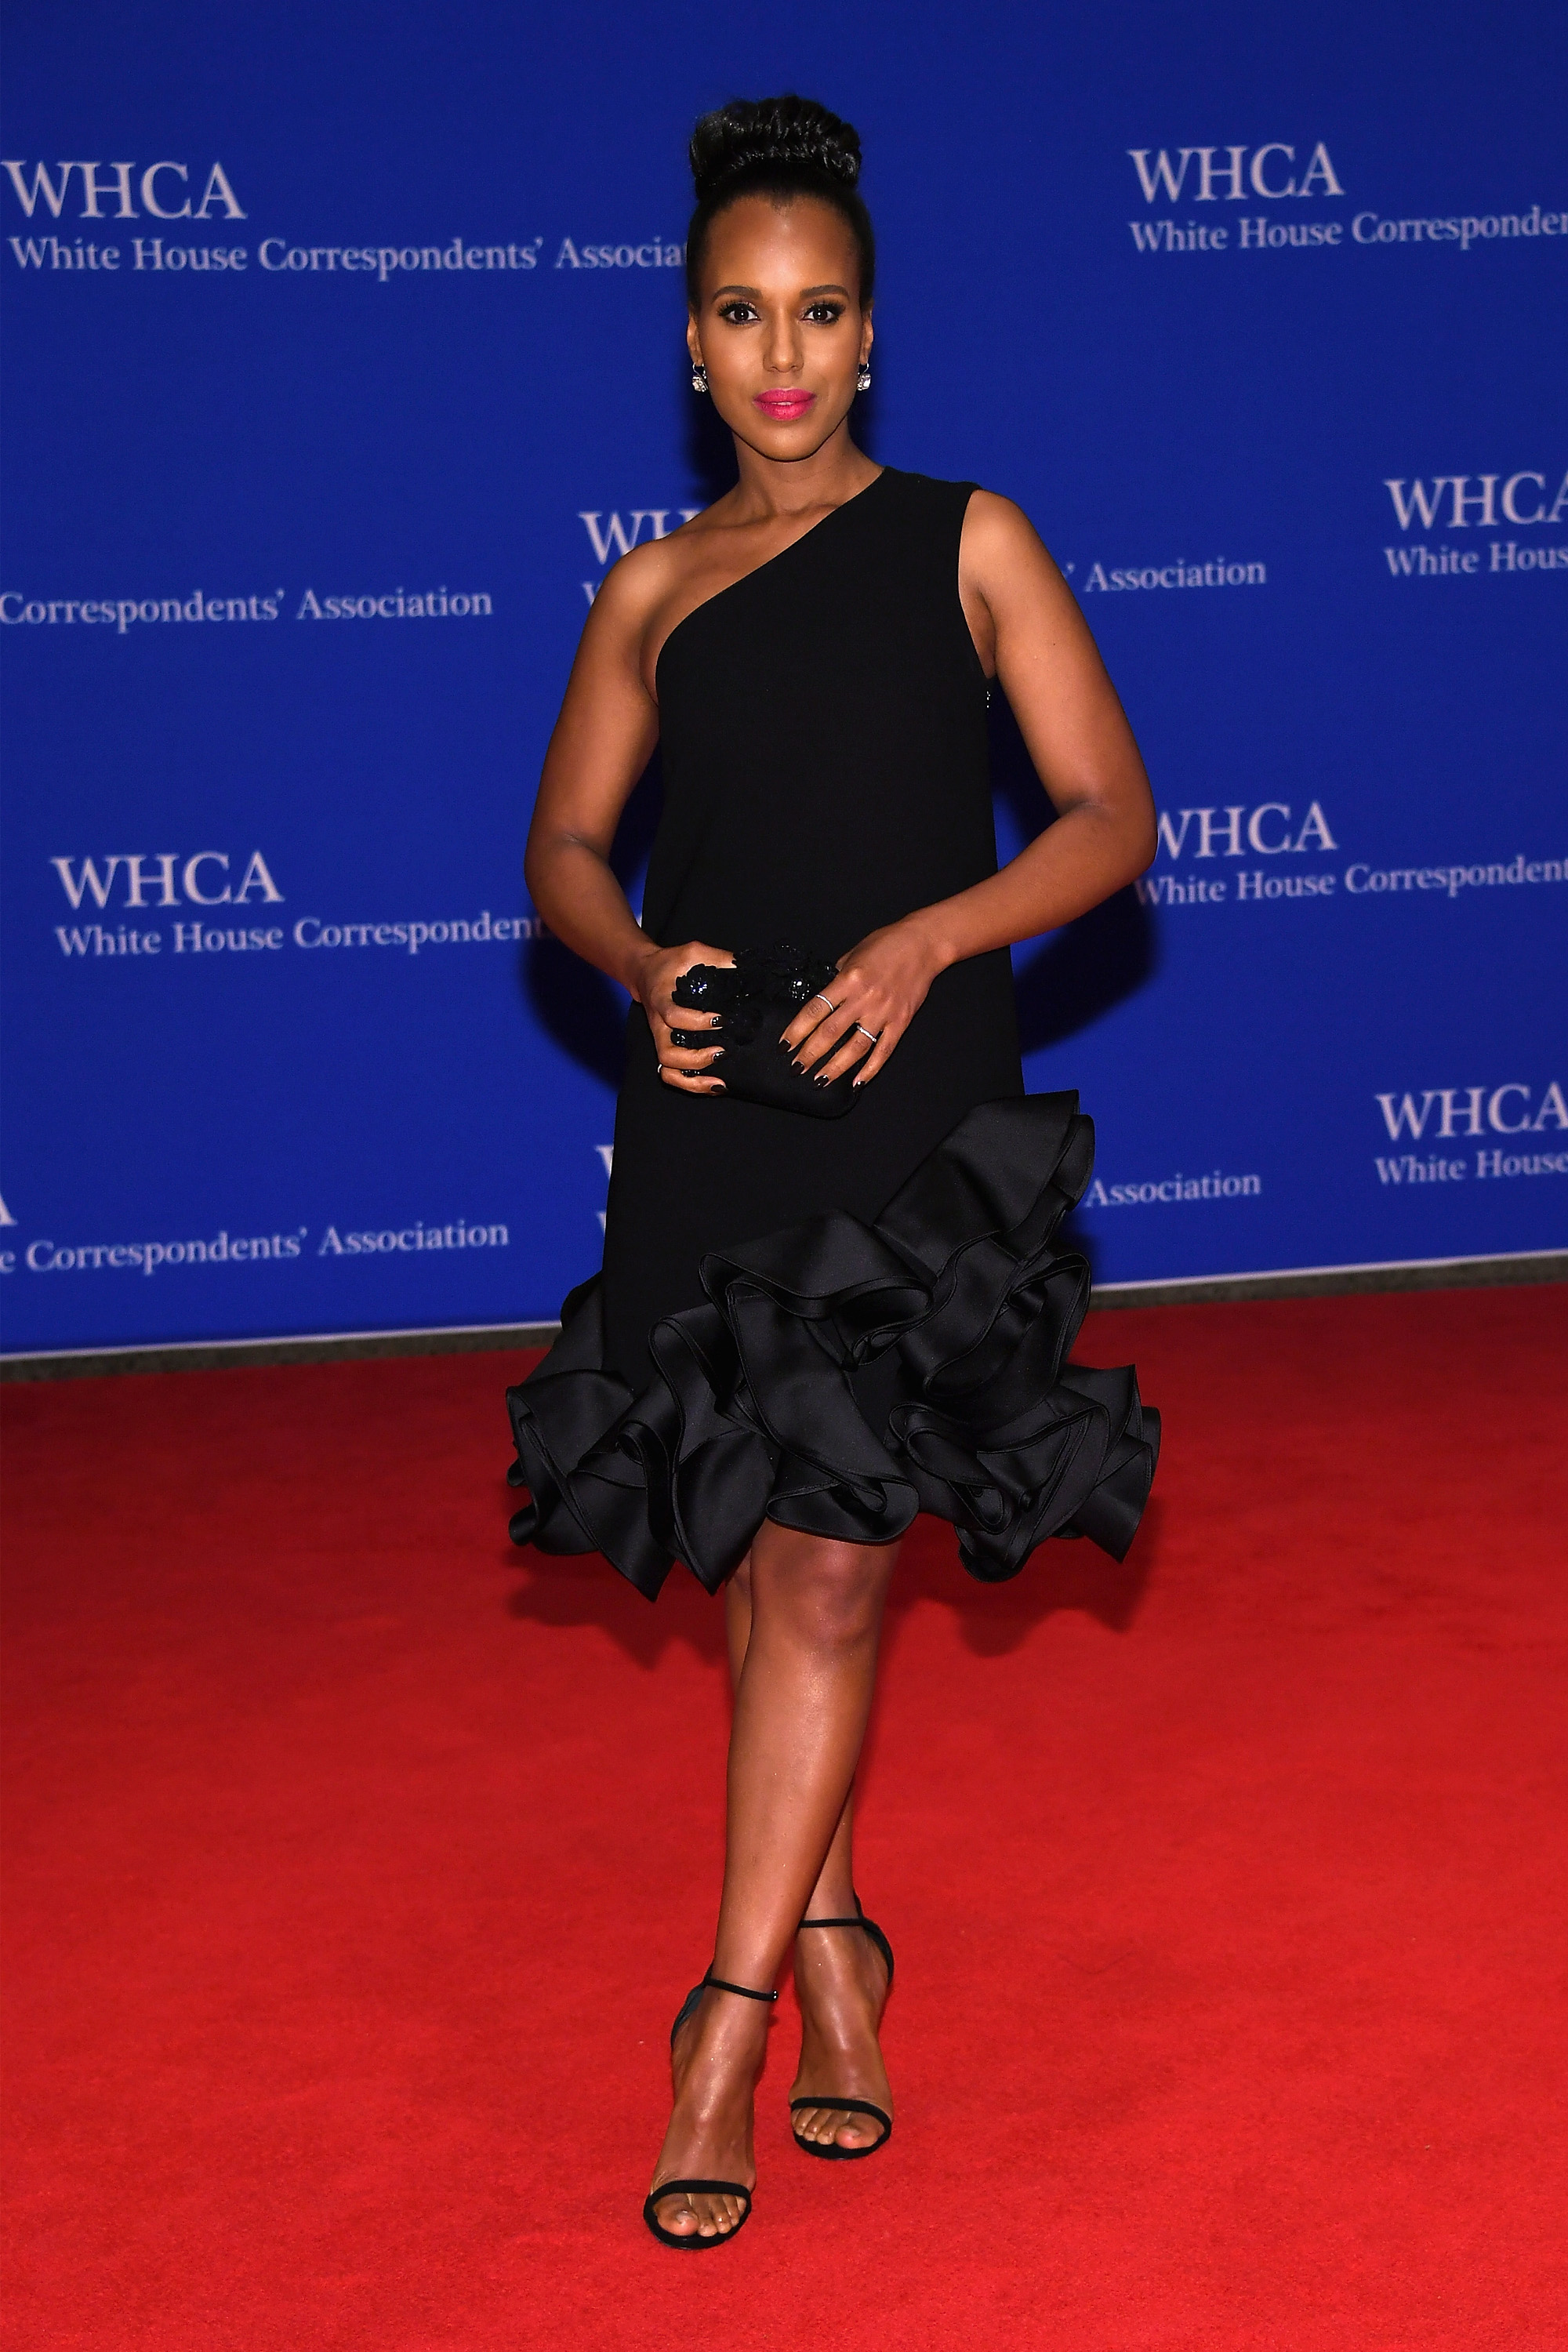 The Cast Of  Scandal  At The 2016 White House Correspondents  Dinner     The Cast Of  Scandal  At The 2016 White House Correspondents  Dinner Looks  Classy As Ever     PHOTOS